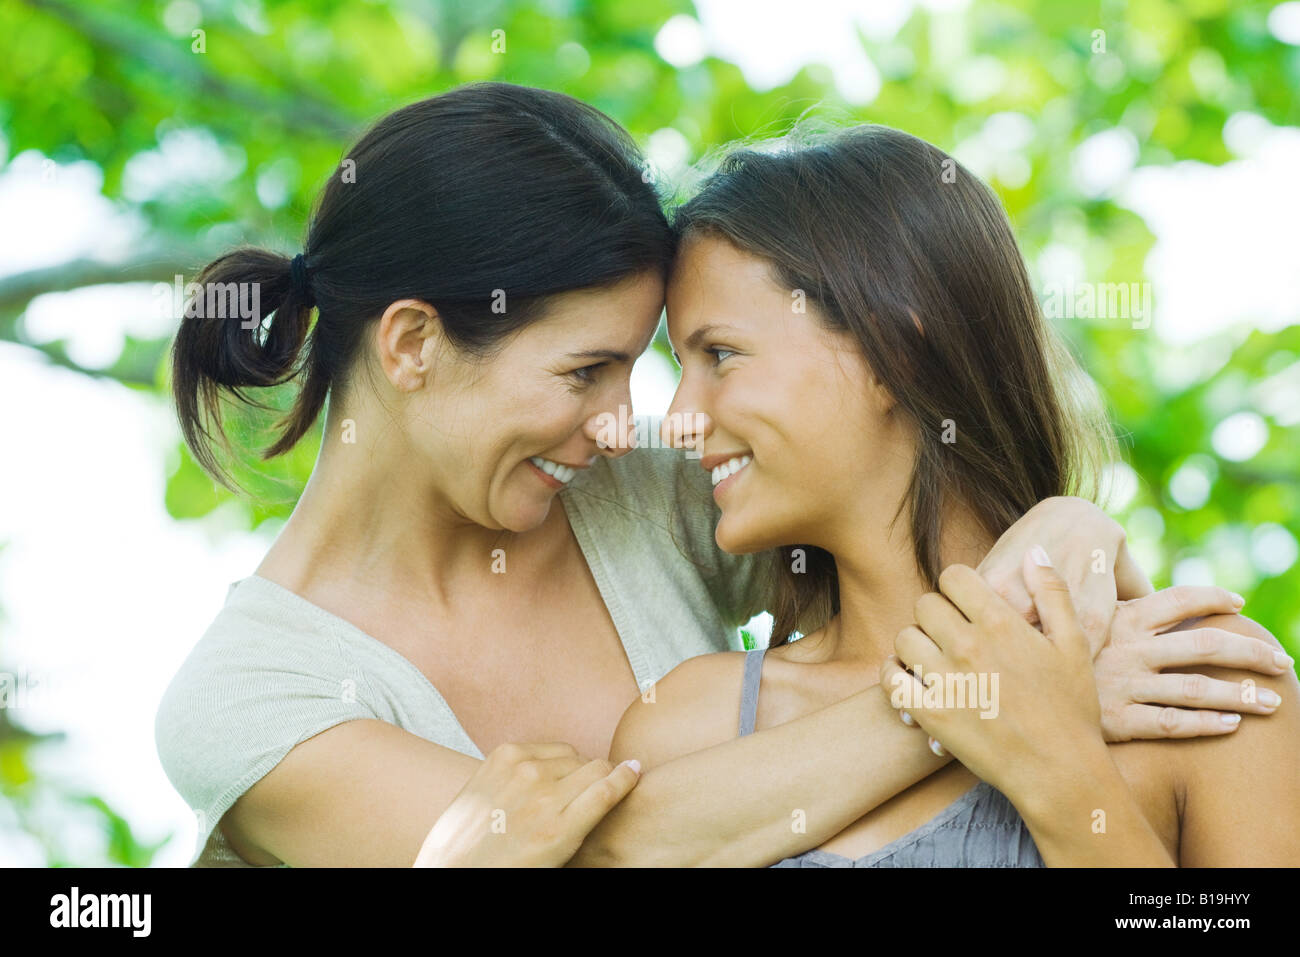 Mother and teen daughter embracing, smiling at each other, touching foreheads - Stock Image